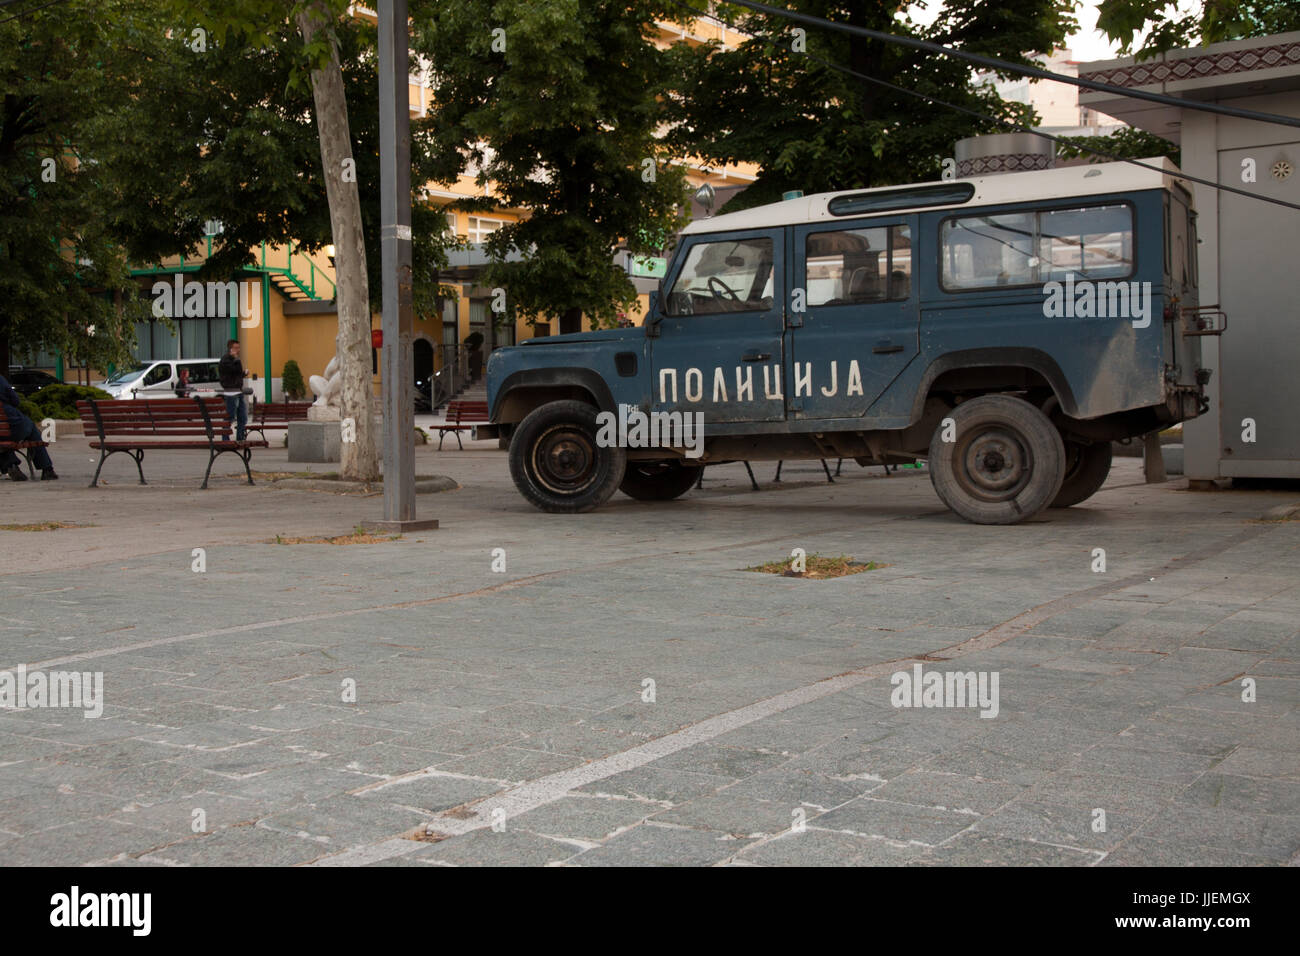 Old macedonian offroad police car - Stock Image